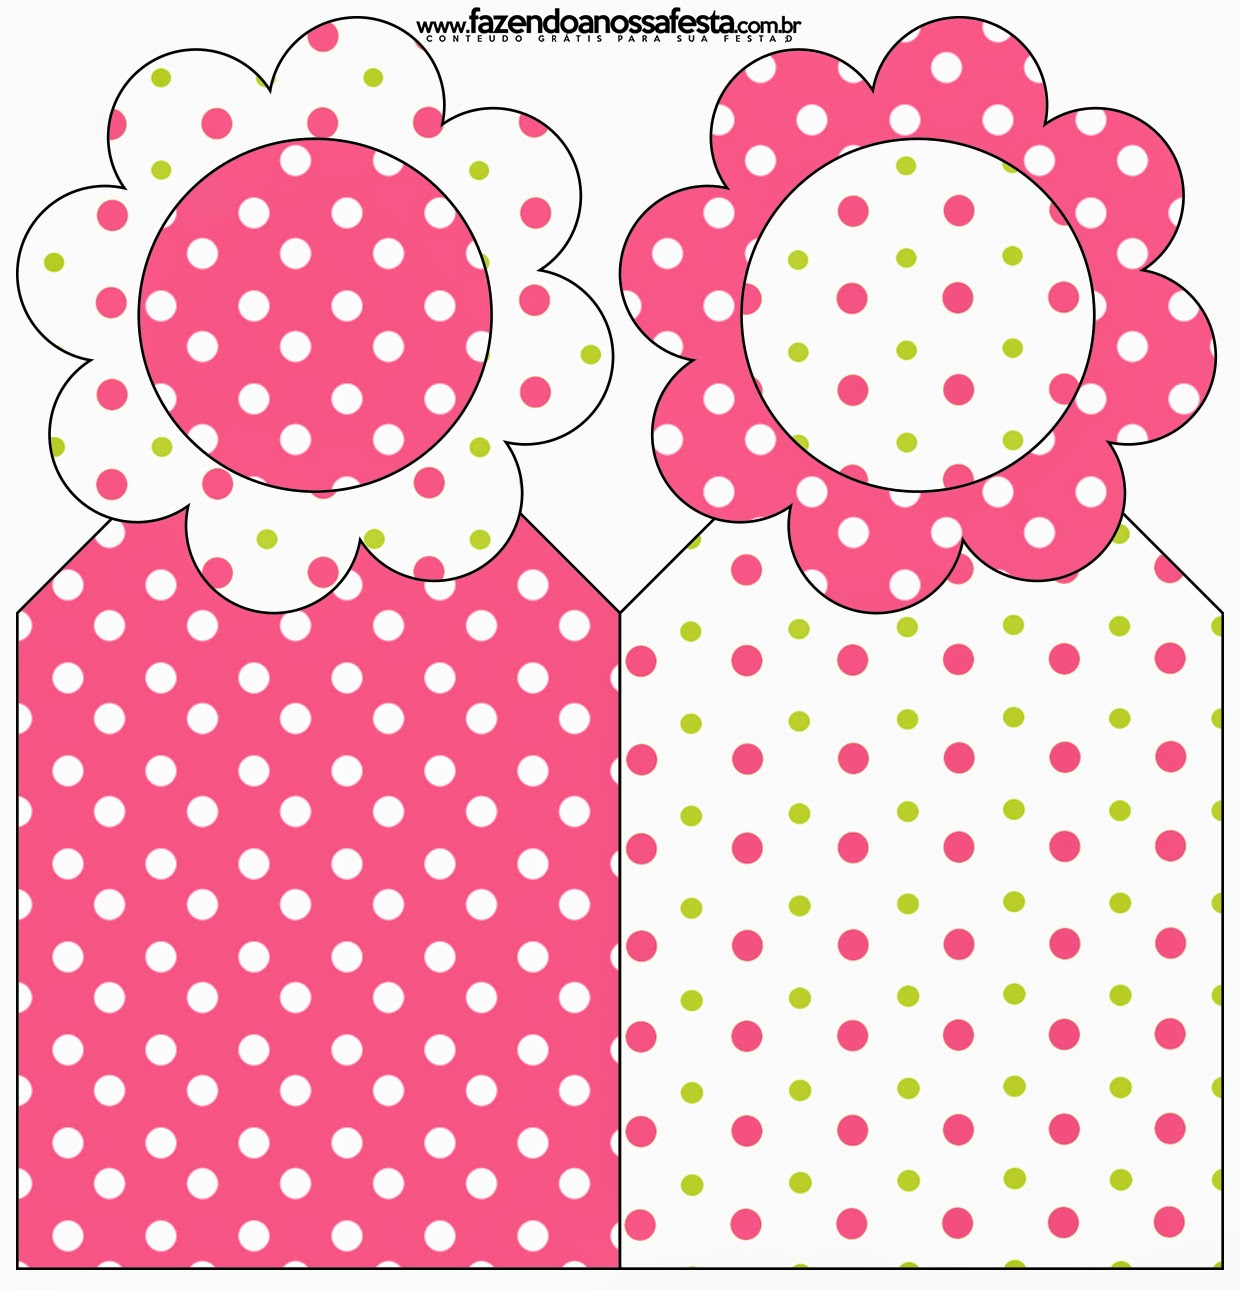 Pink, Green and White Polka Dots Free Printable Bookmarks.